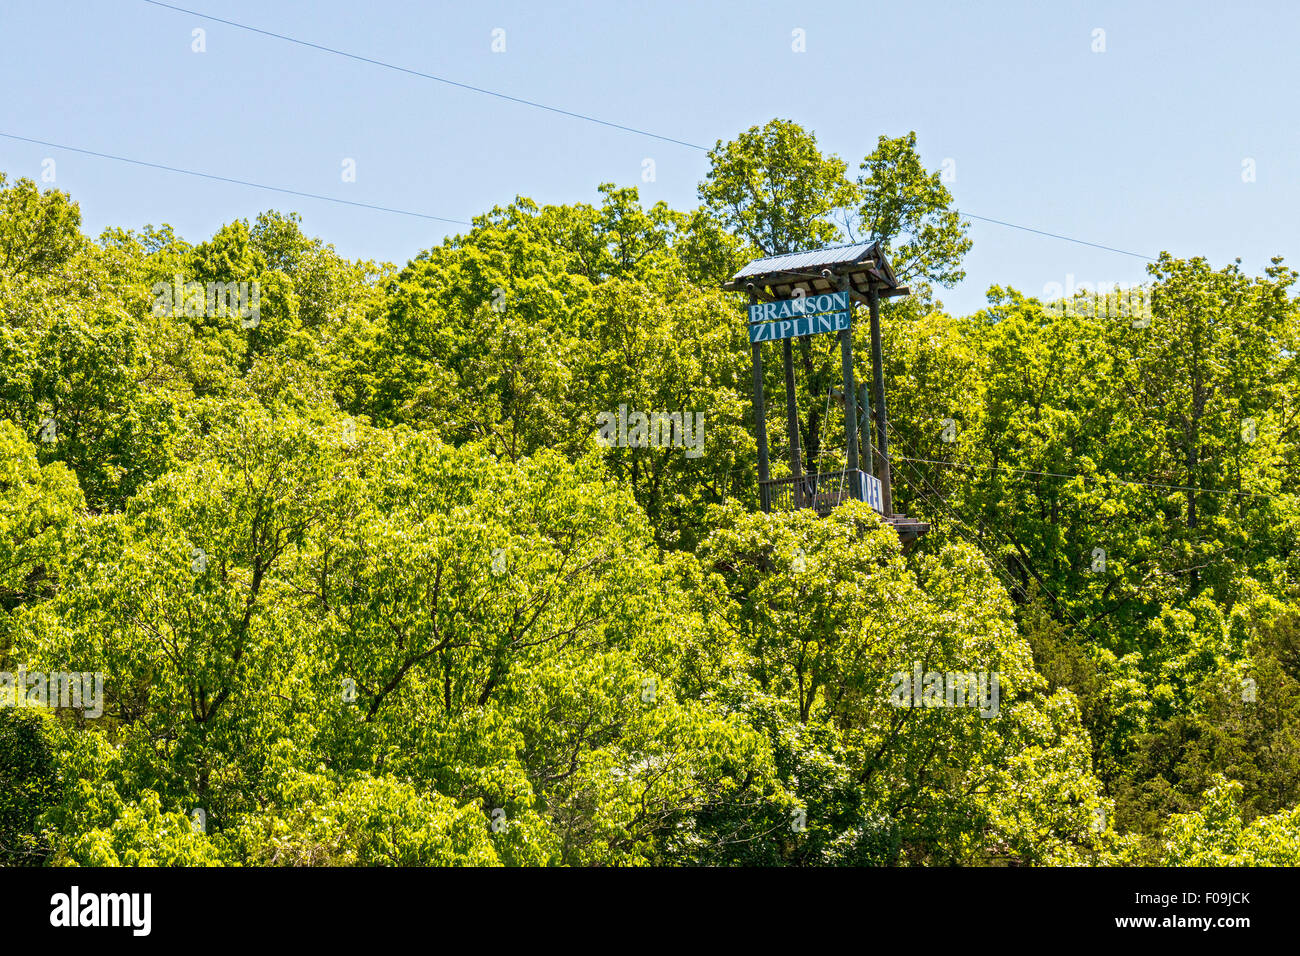 Zipline adventure at Branson Zipline Canopy Tours in Branson, MO. Stock Photo